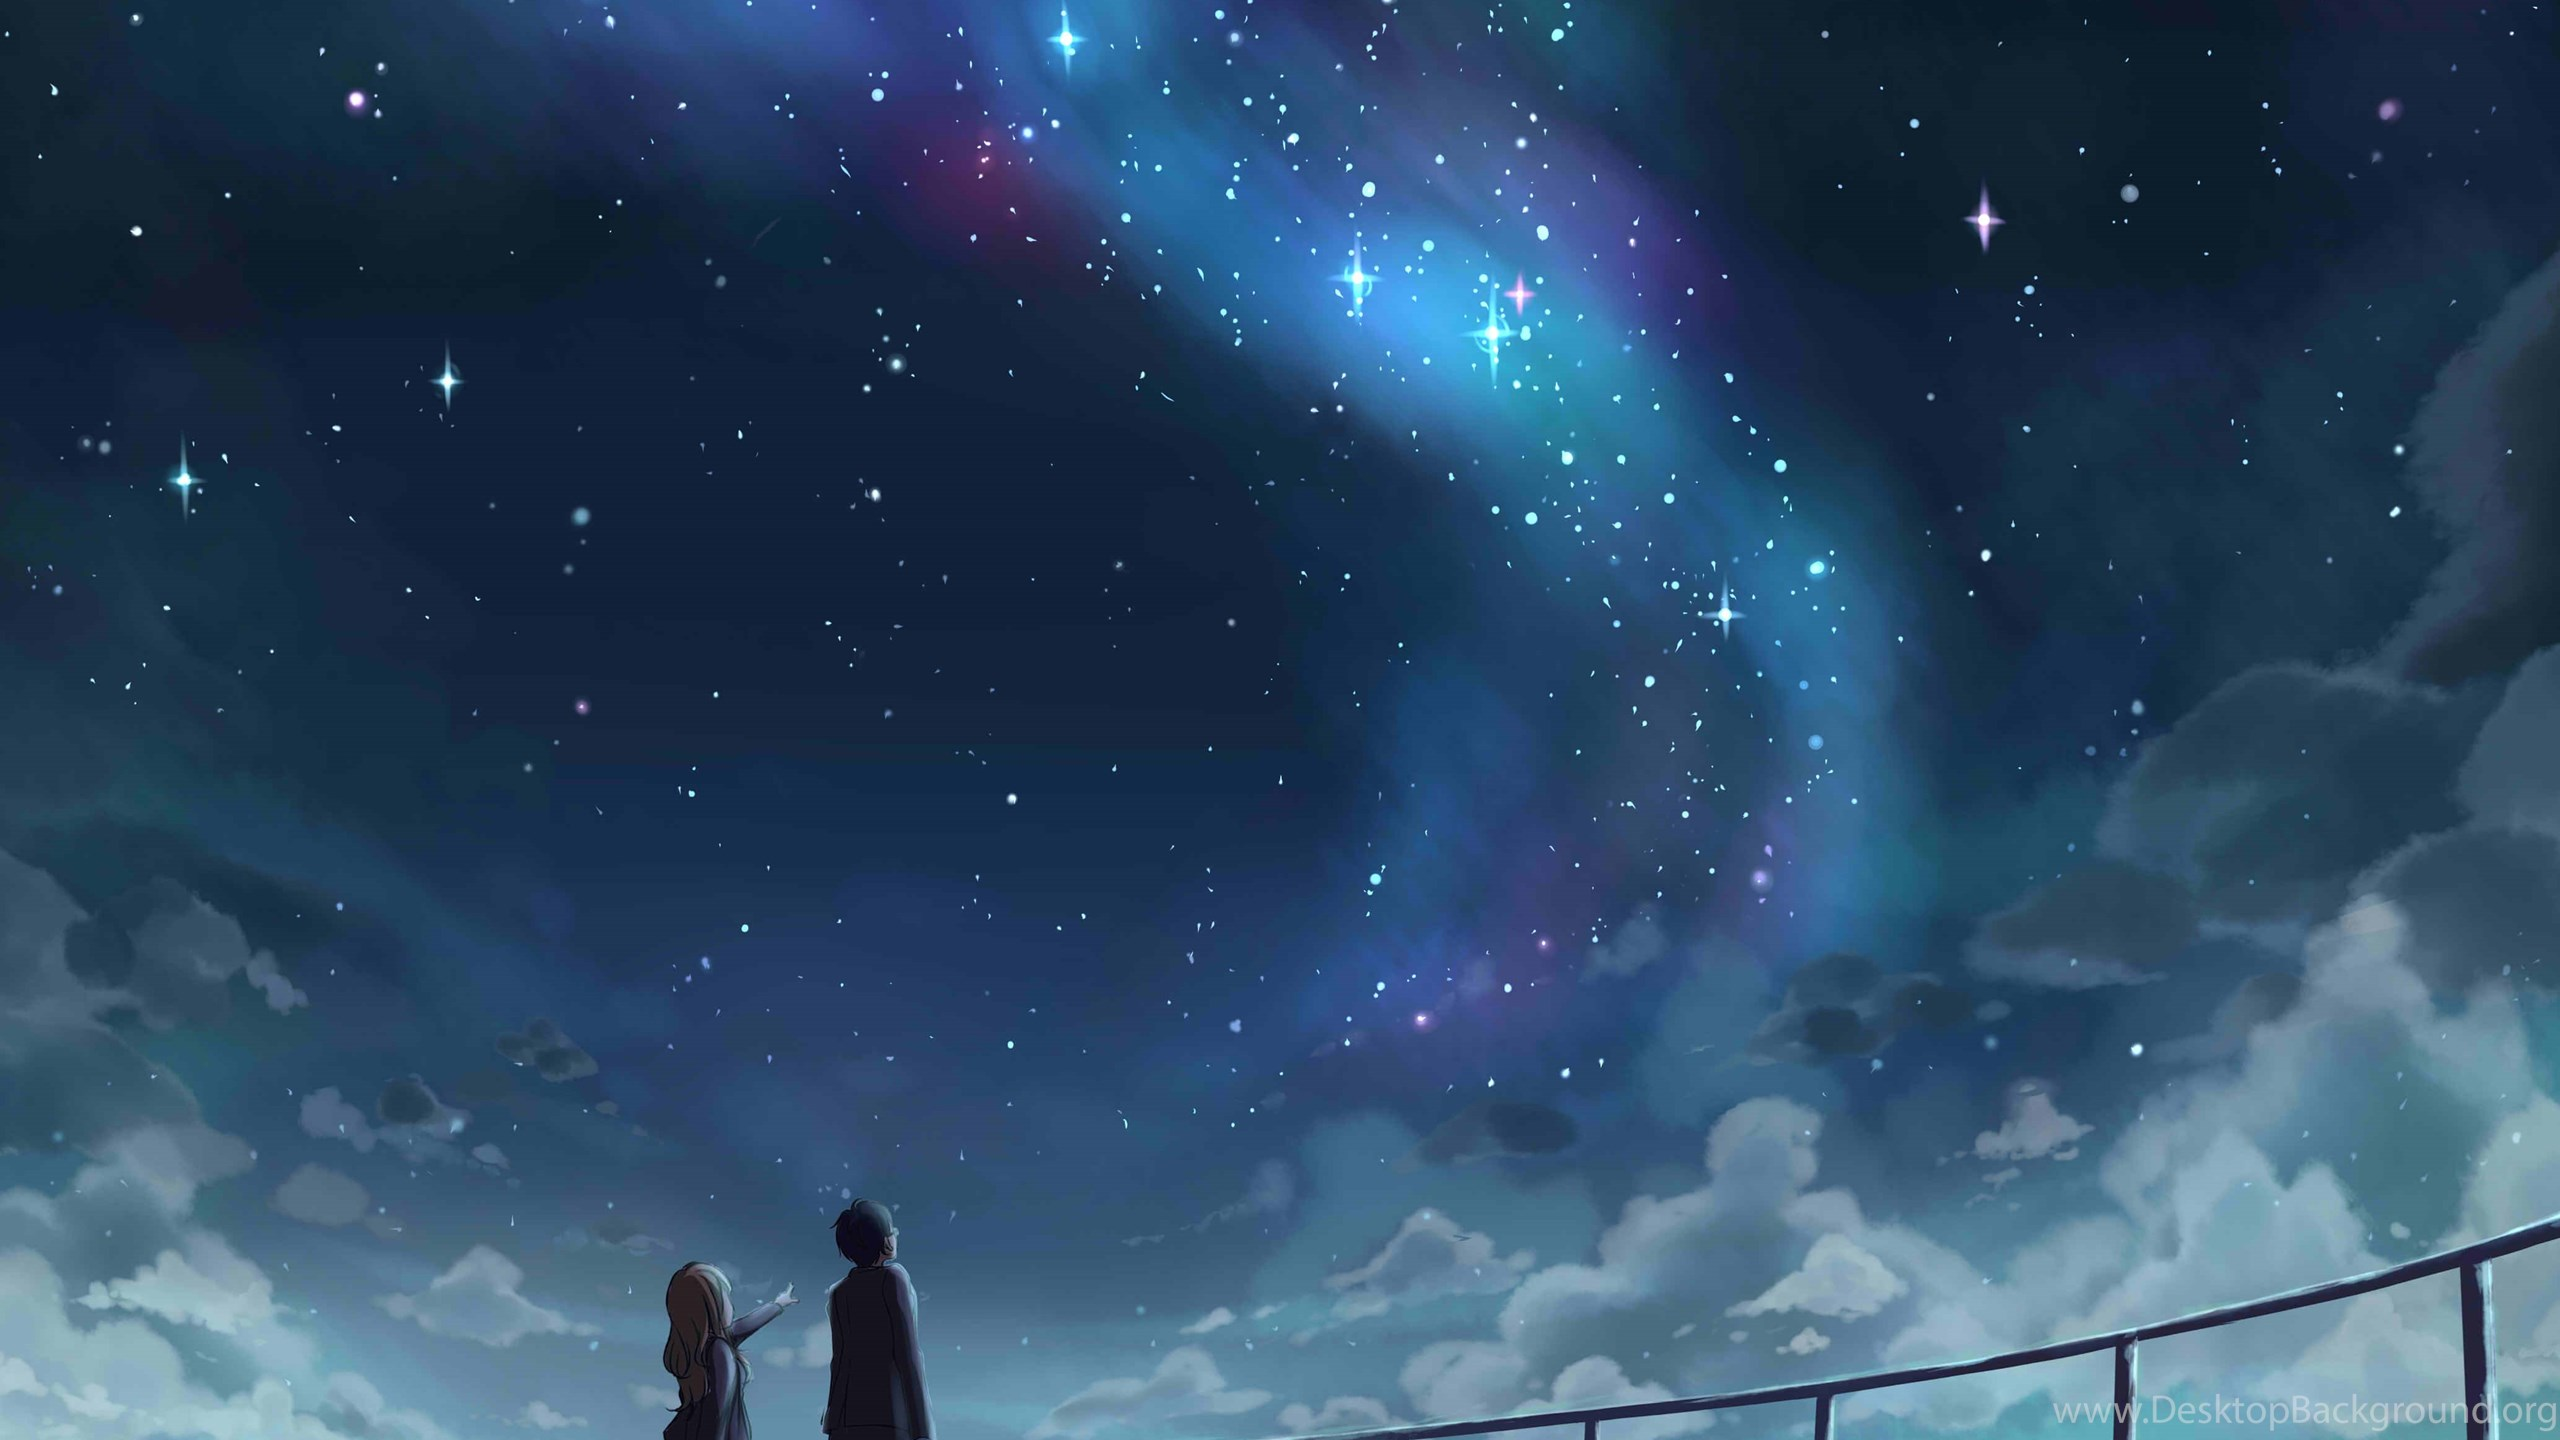 Your Lie In April Computer Wallpapers, Desktop Backgrounds